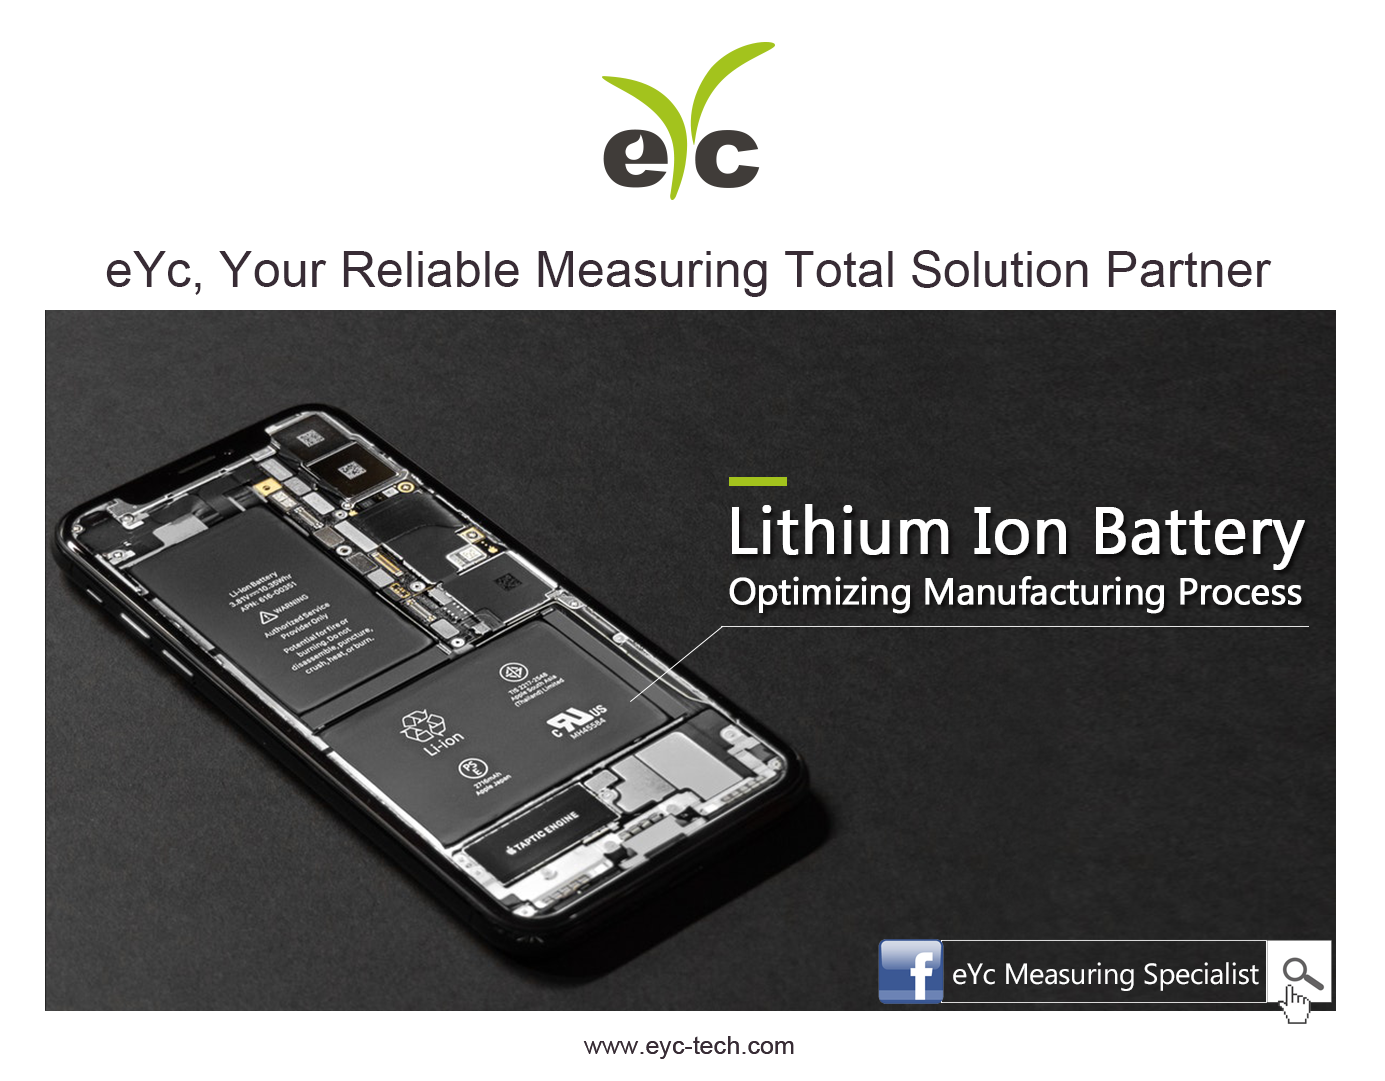 Glove Box and Lithium-ion Battery applied to Optimizing Manufacturing Process - Dew Point Measuring Solution